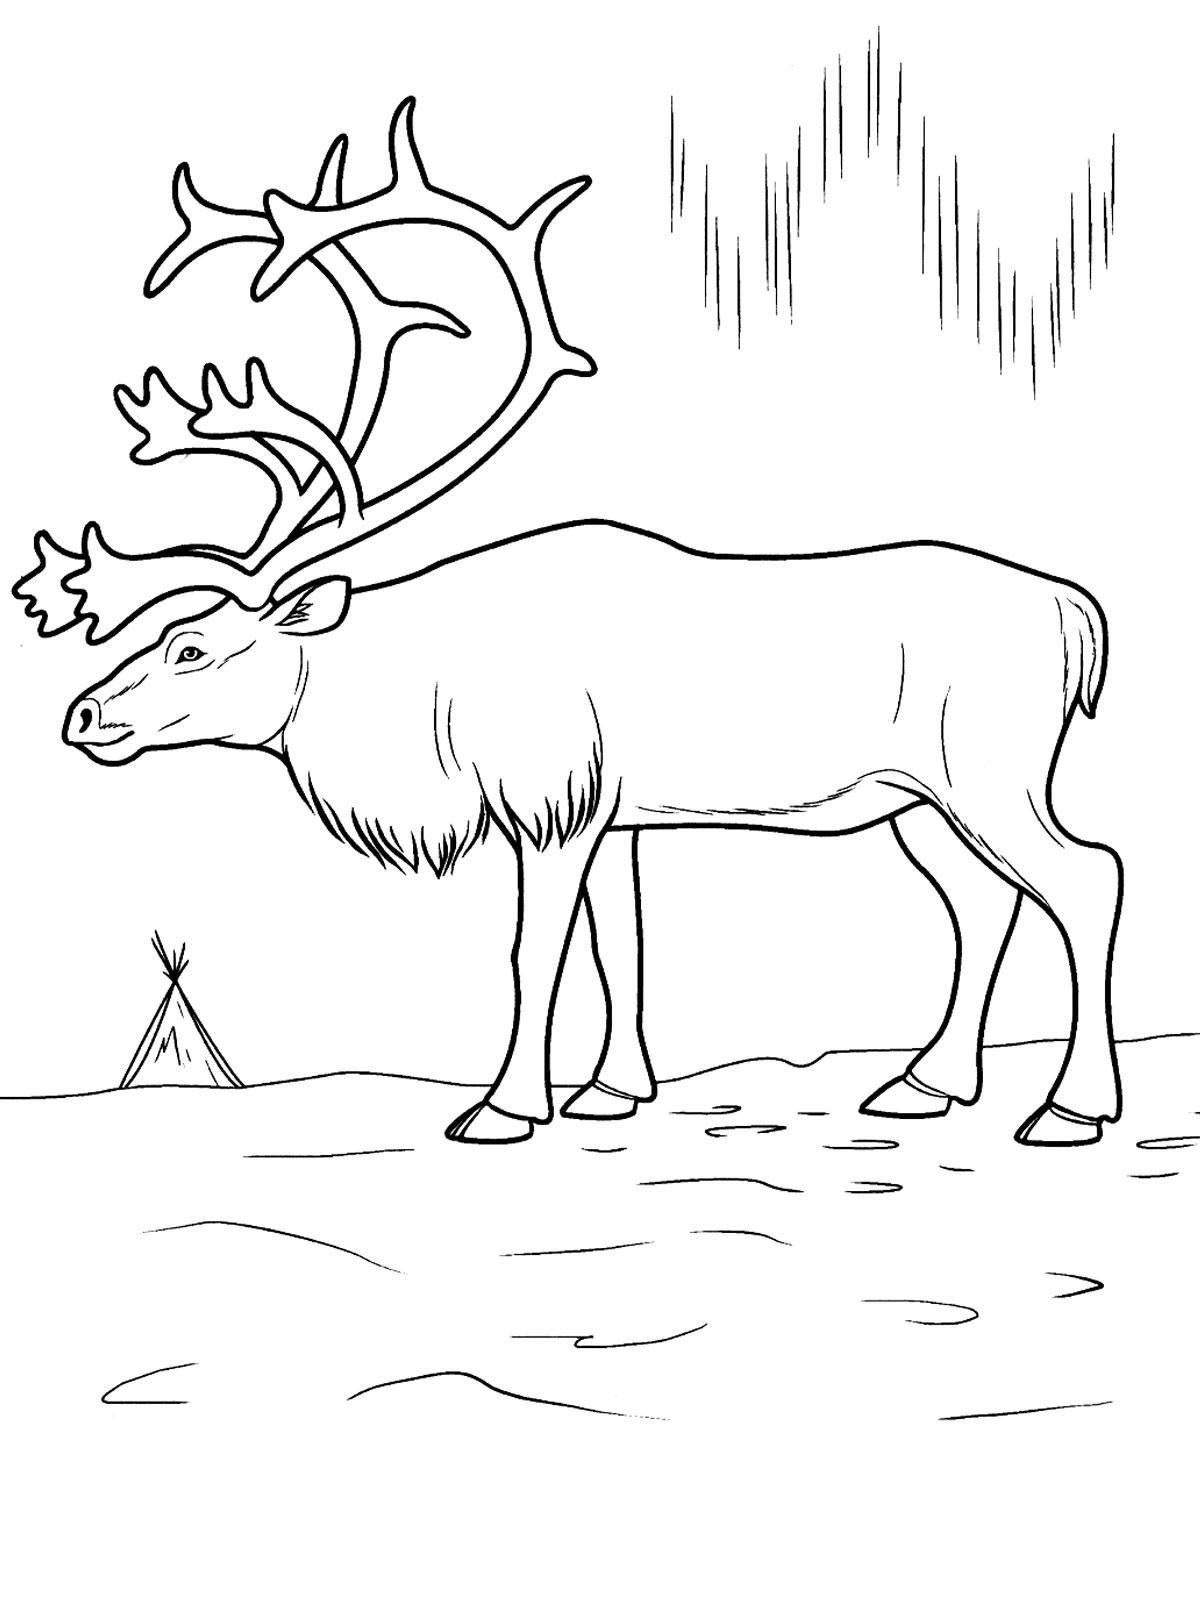 arctic fox coloring pages arctic fox coloring pages coloring pages to download and fox arctic coloring pages